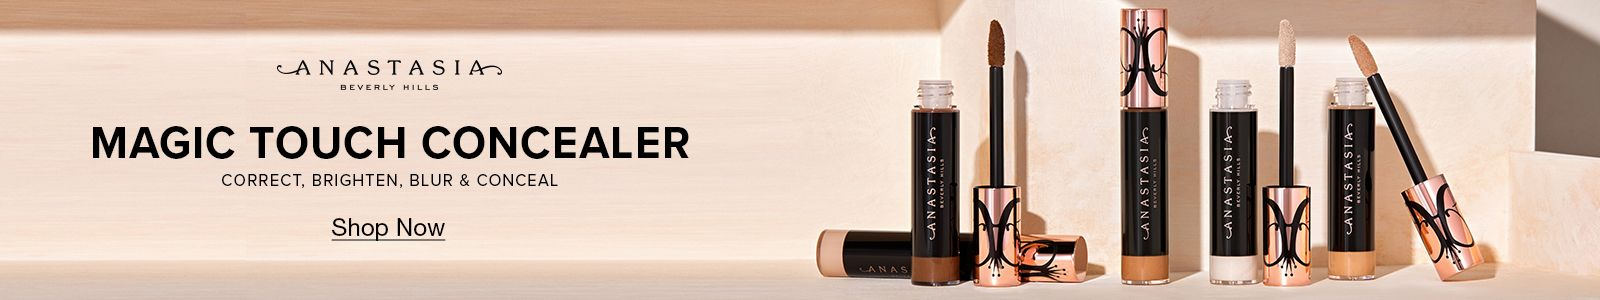 Anastasia, Magic Touch Concealer, Shop Now